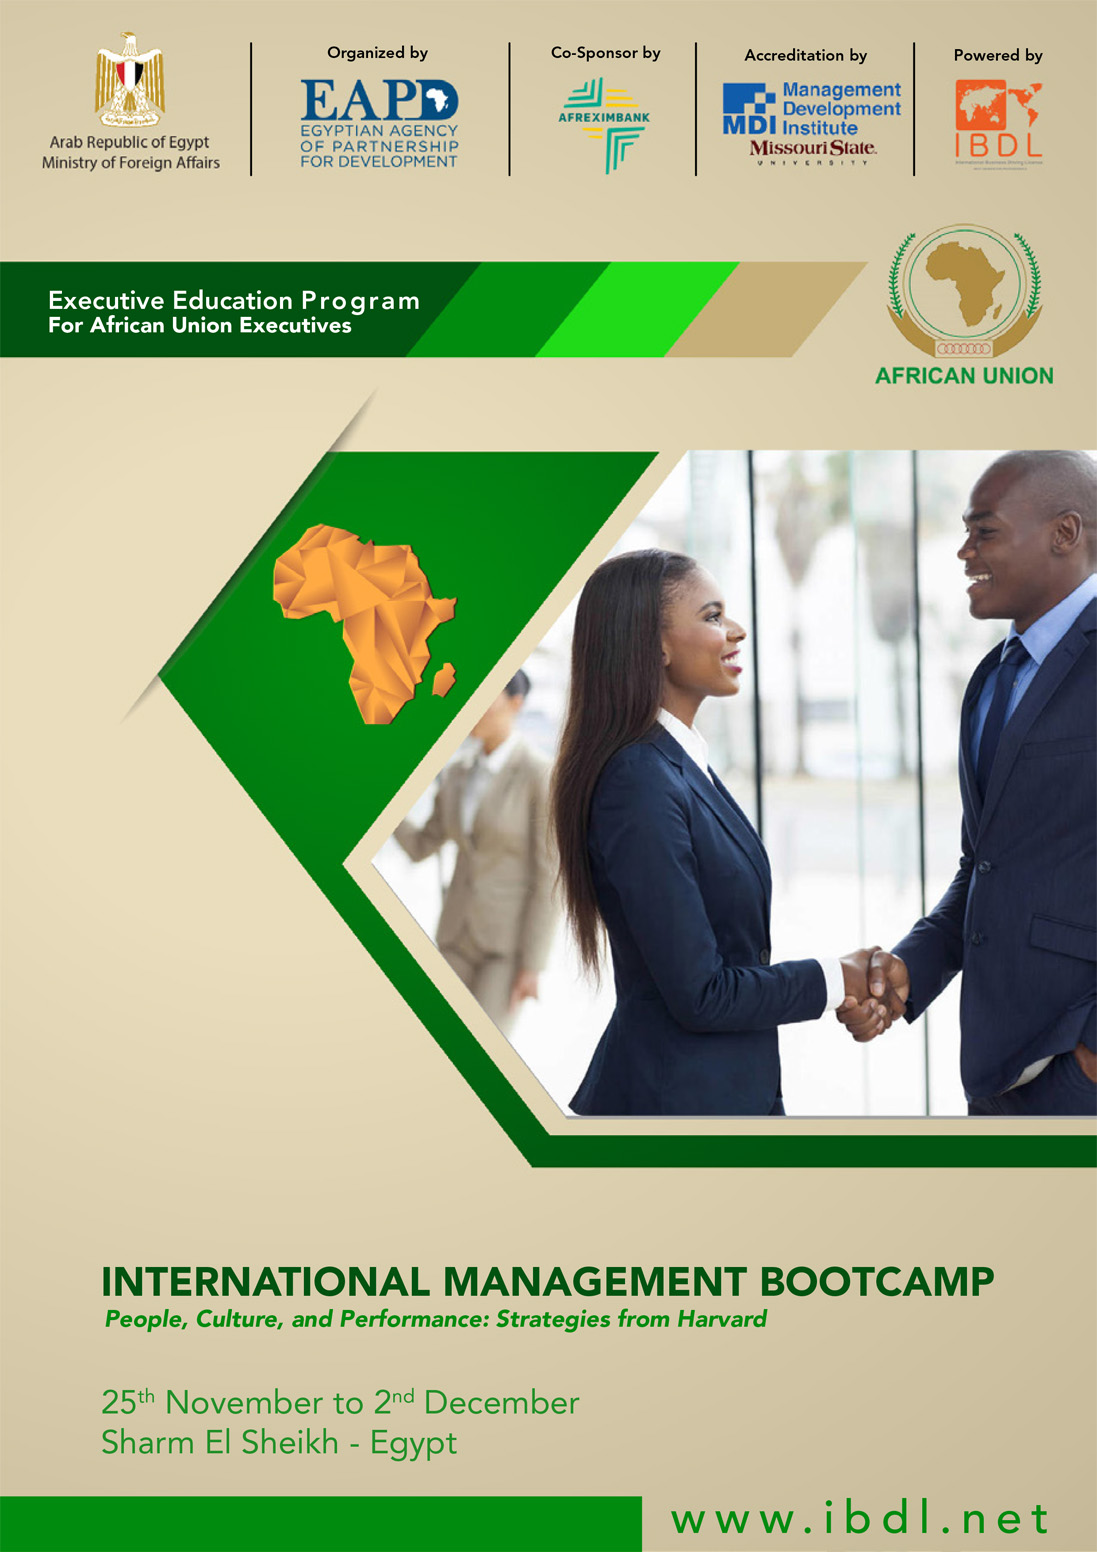 IBDL launches the First Round of African Union Executives' Boot camp